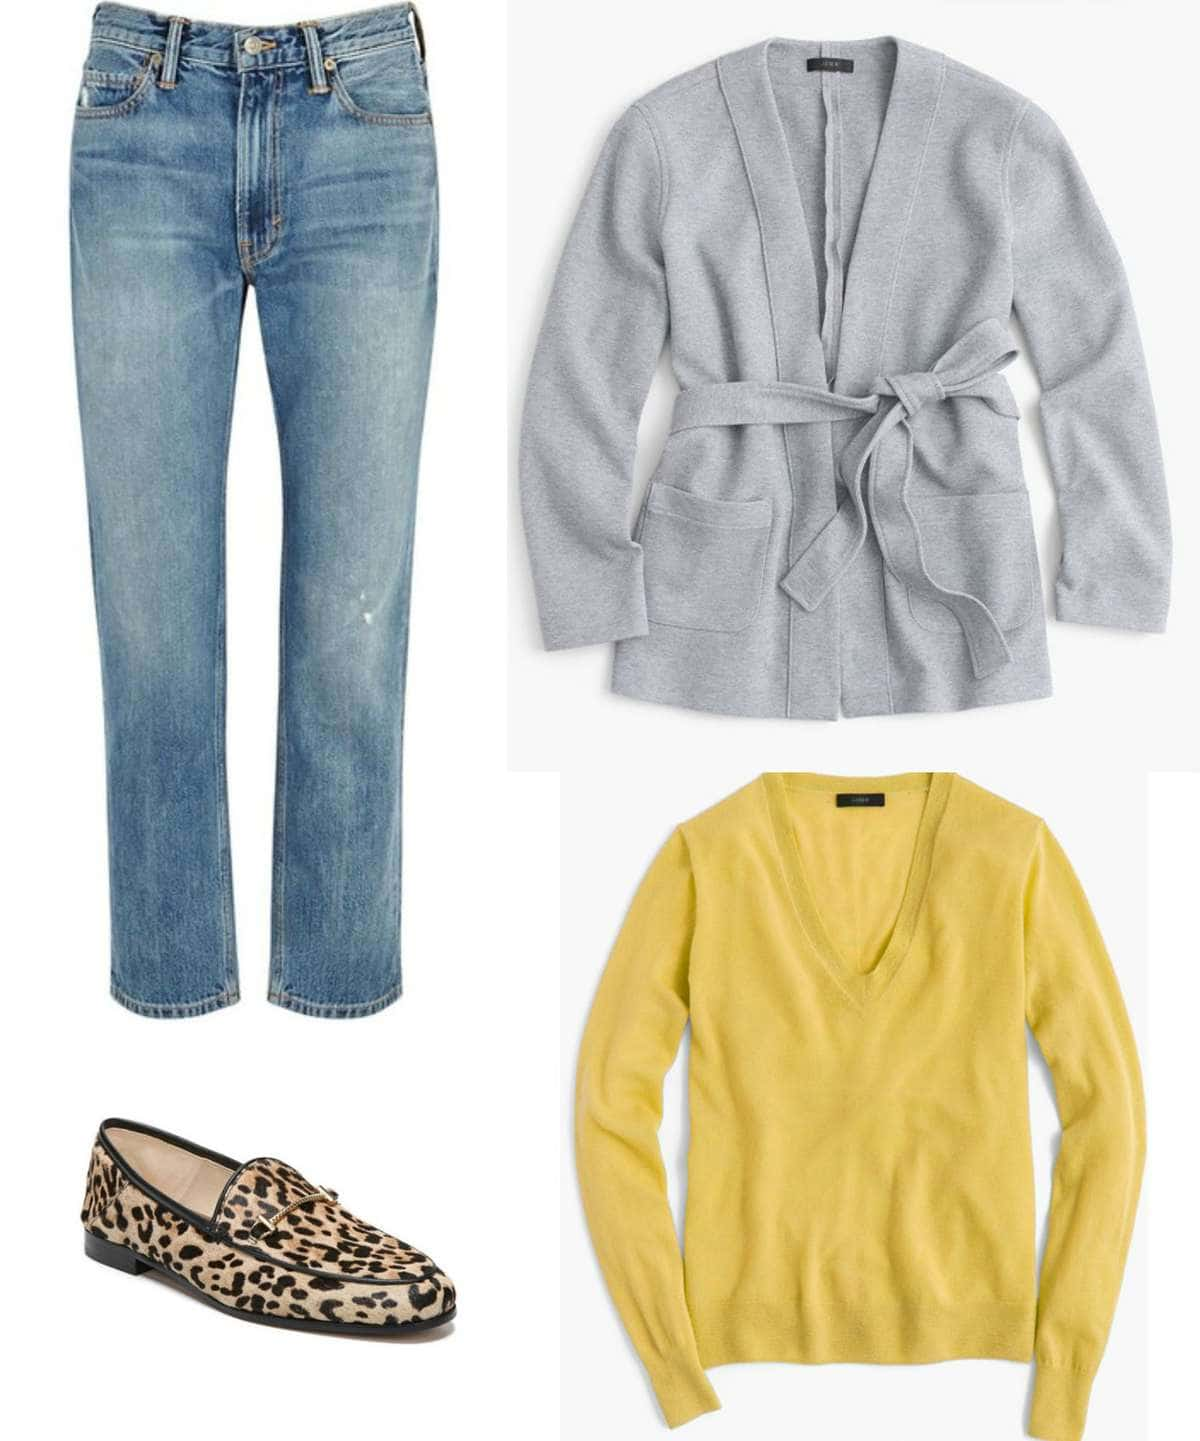 Lightweight layers ward against autumn chill without adding bulk